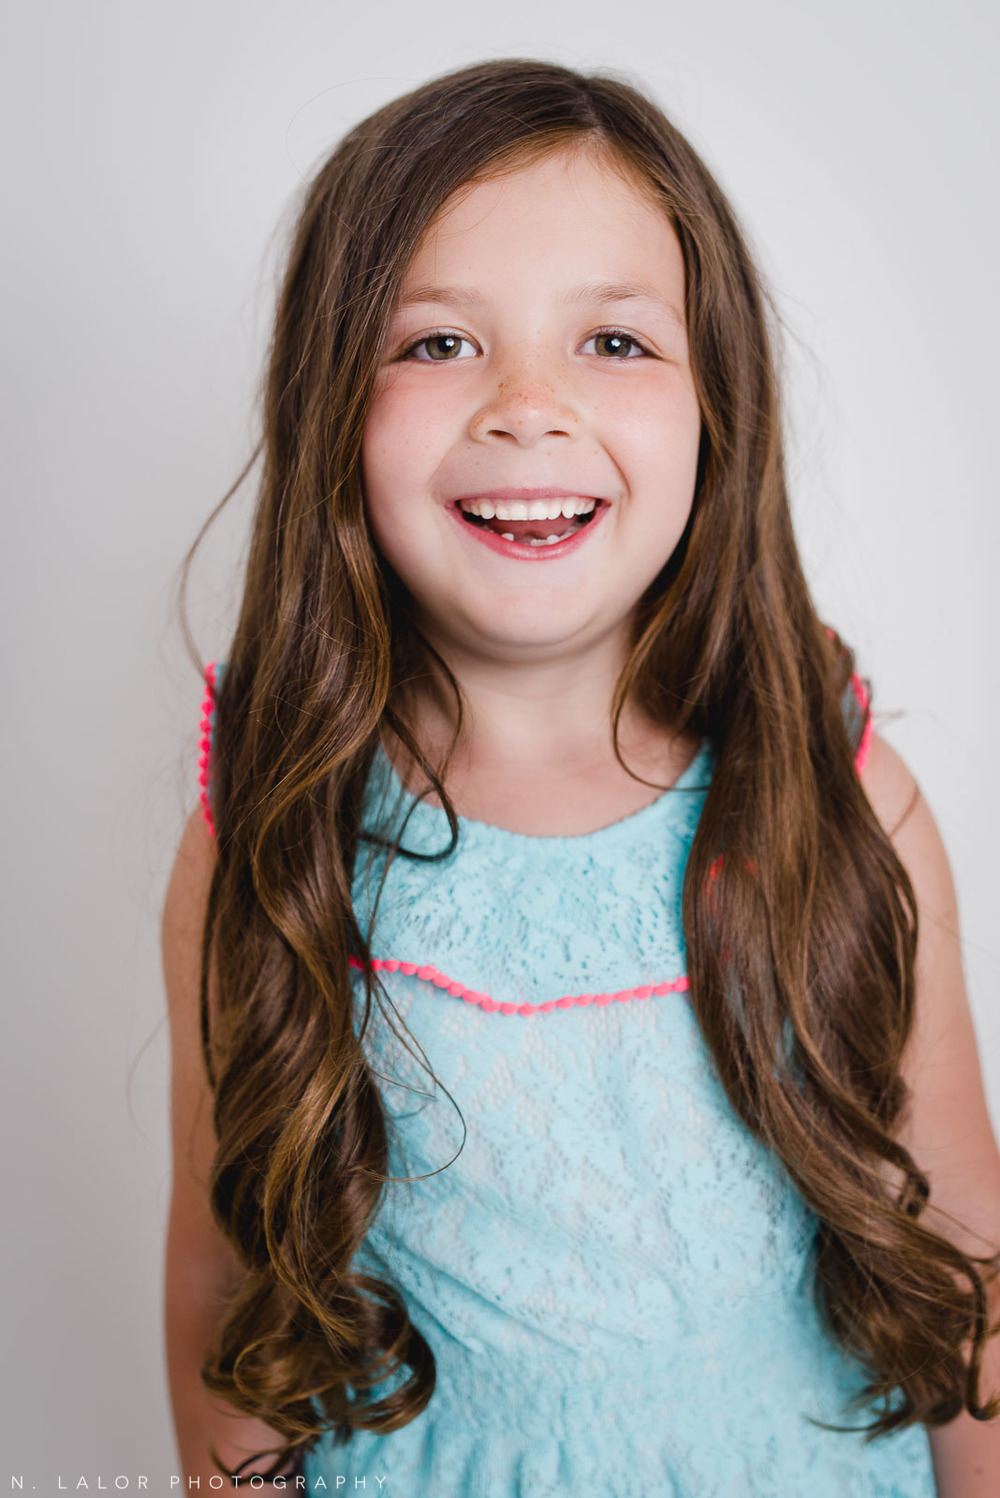 Studio portrait session with a 6-year old girl by N. Lalor Photography in Greenwich, CT.